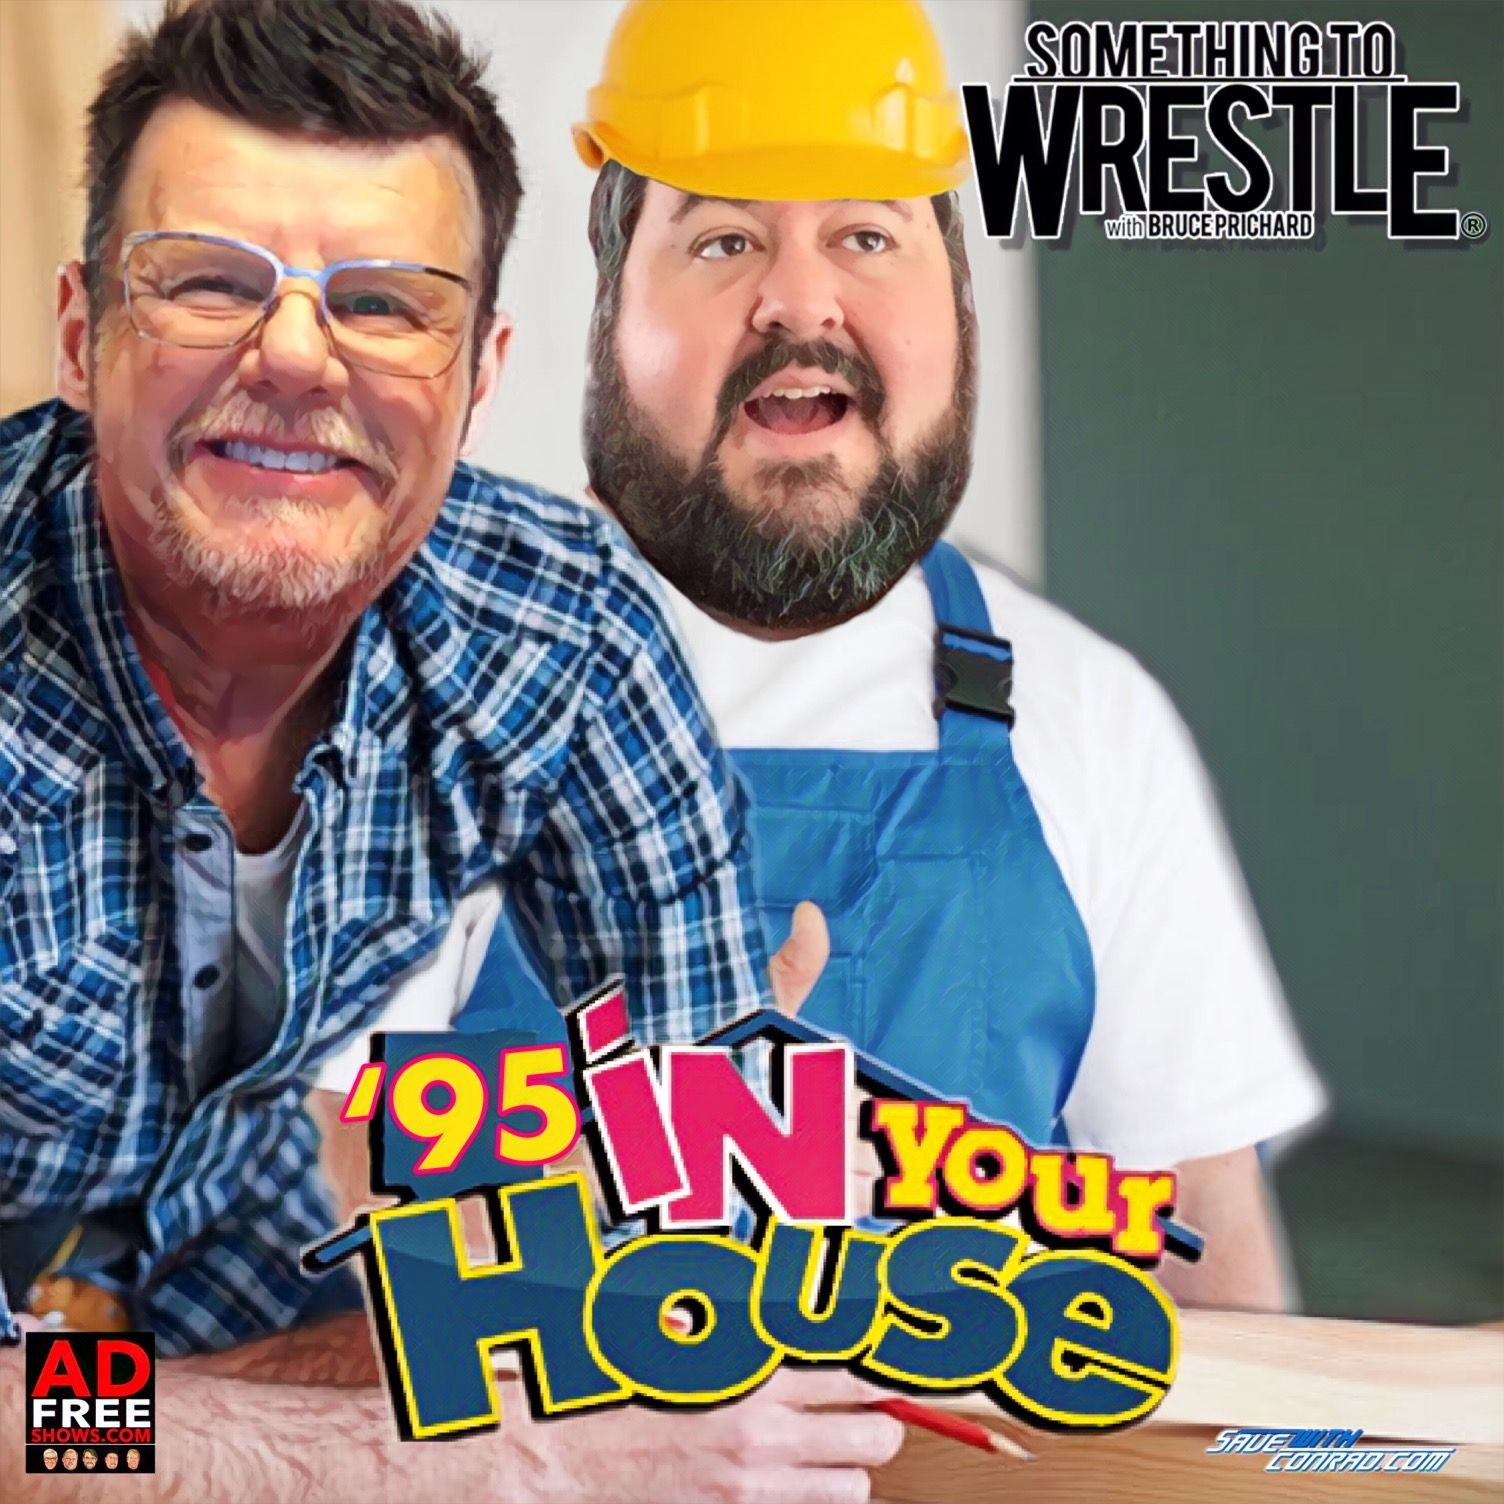 Episode 215: In Your House #1 (1995)